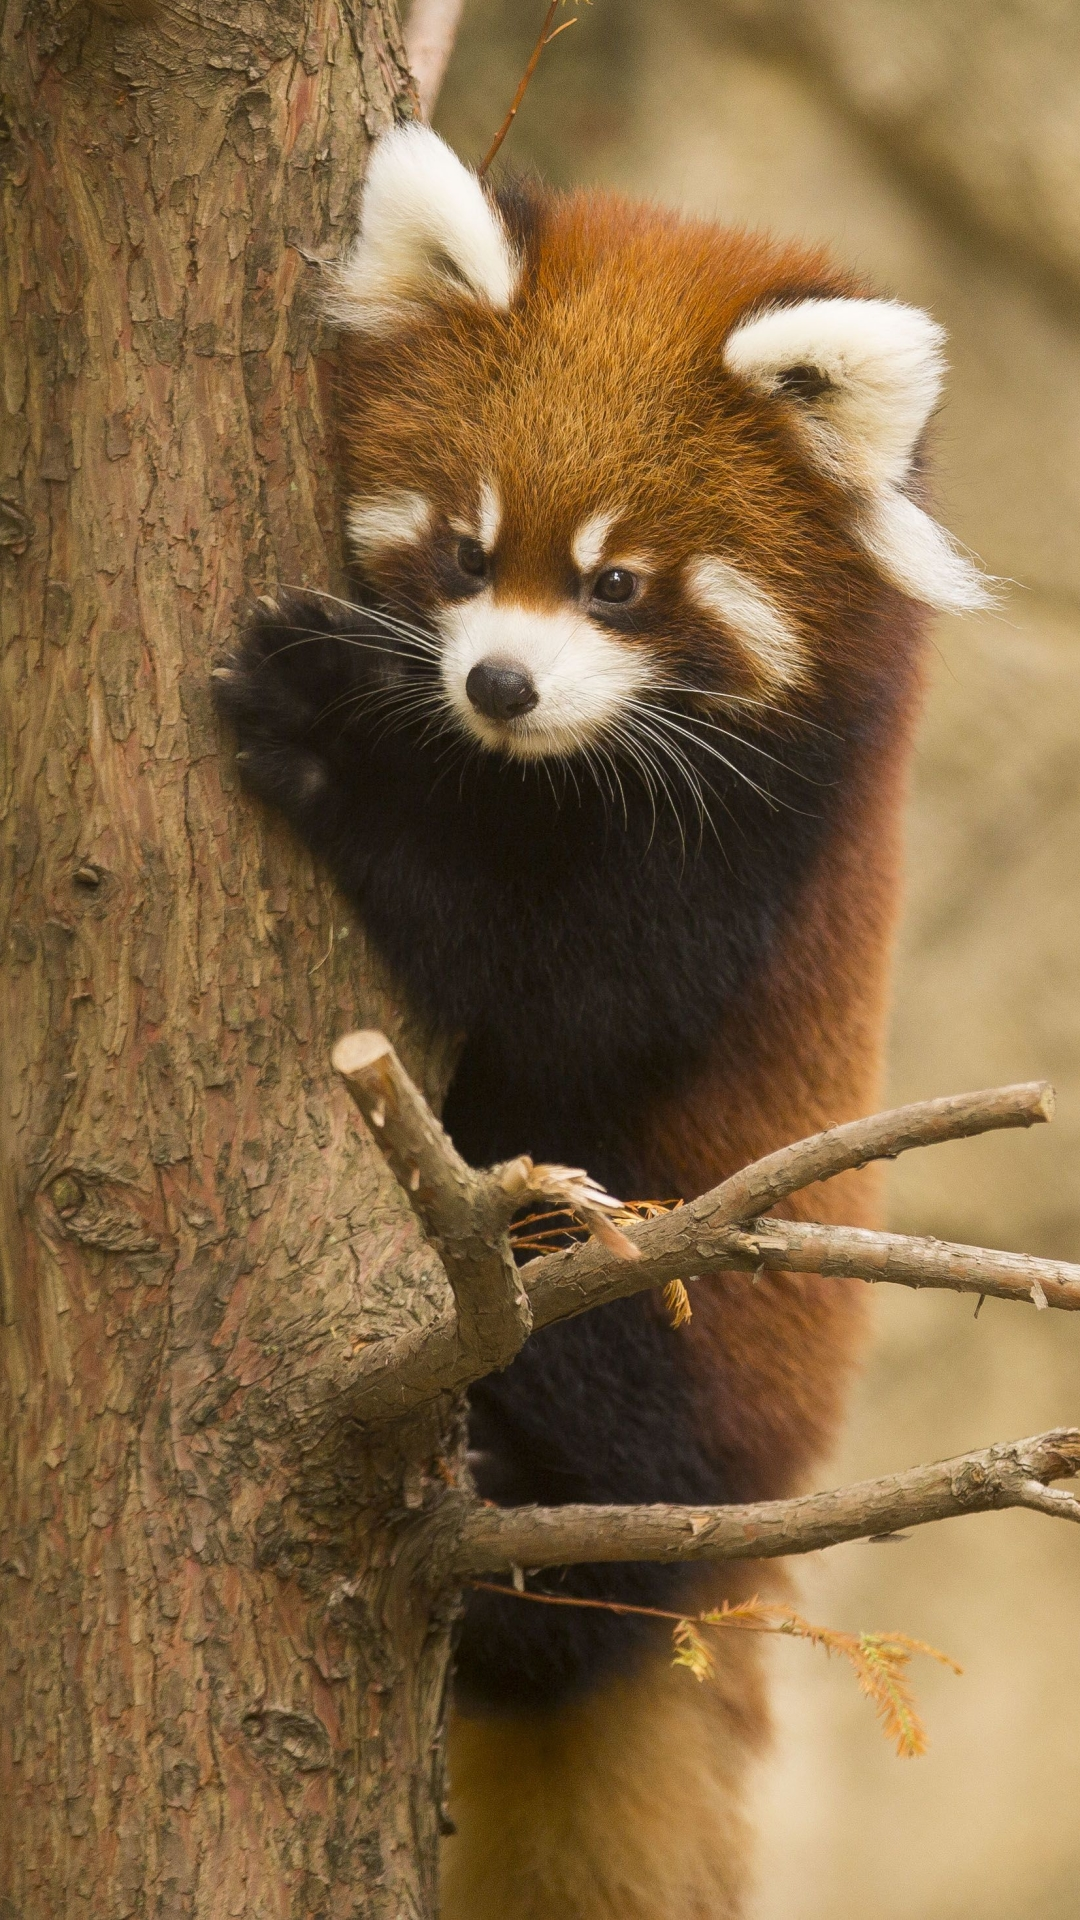 Animal Red Panda 1080x1920 Wallpaper Id 662588 Mobile Abyss